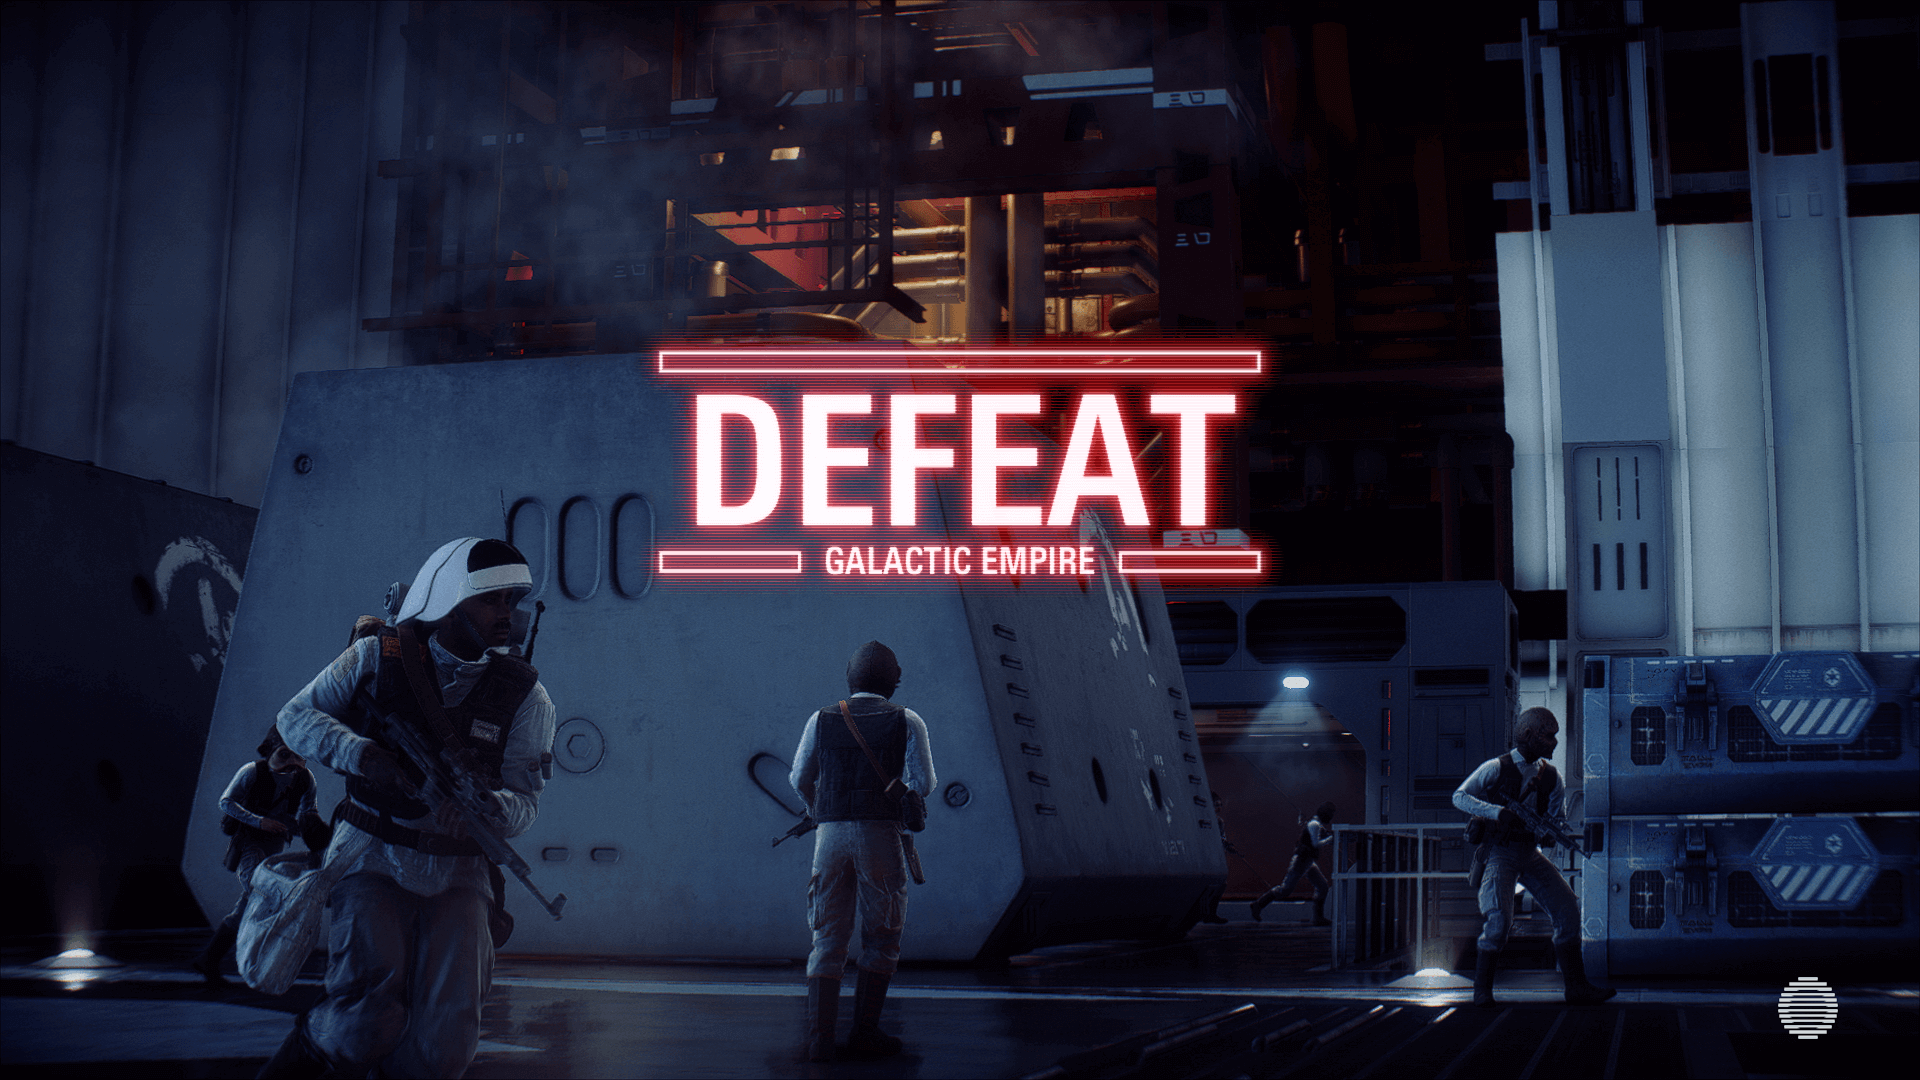 star-wars-battlefront-ii-defeat